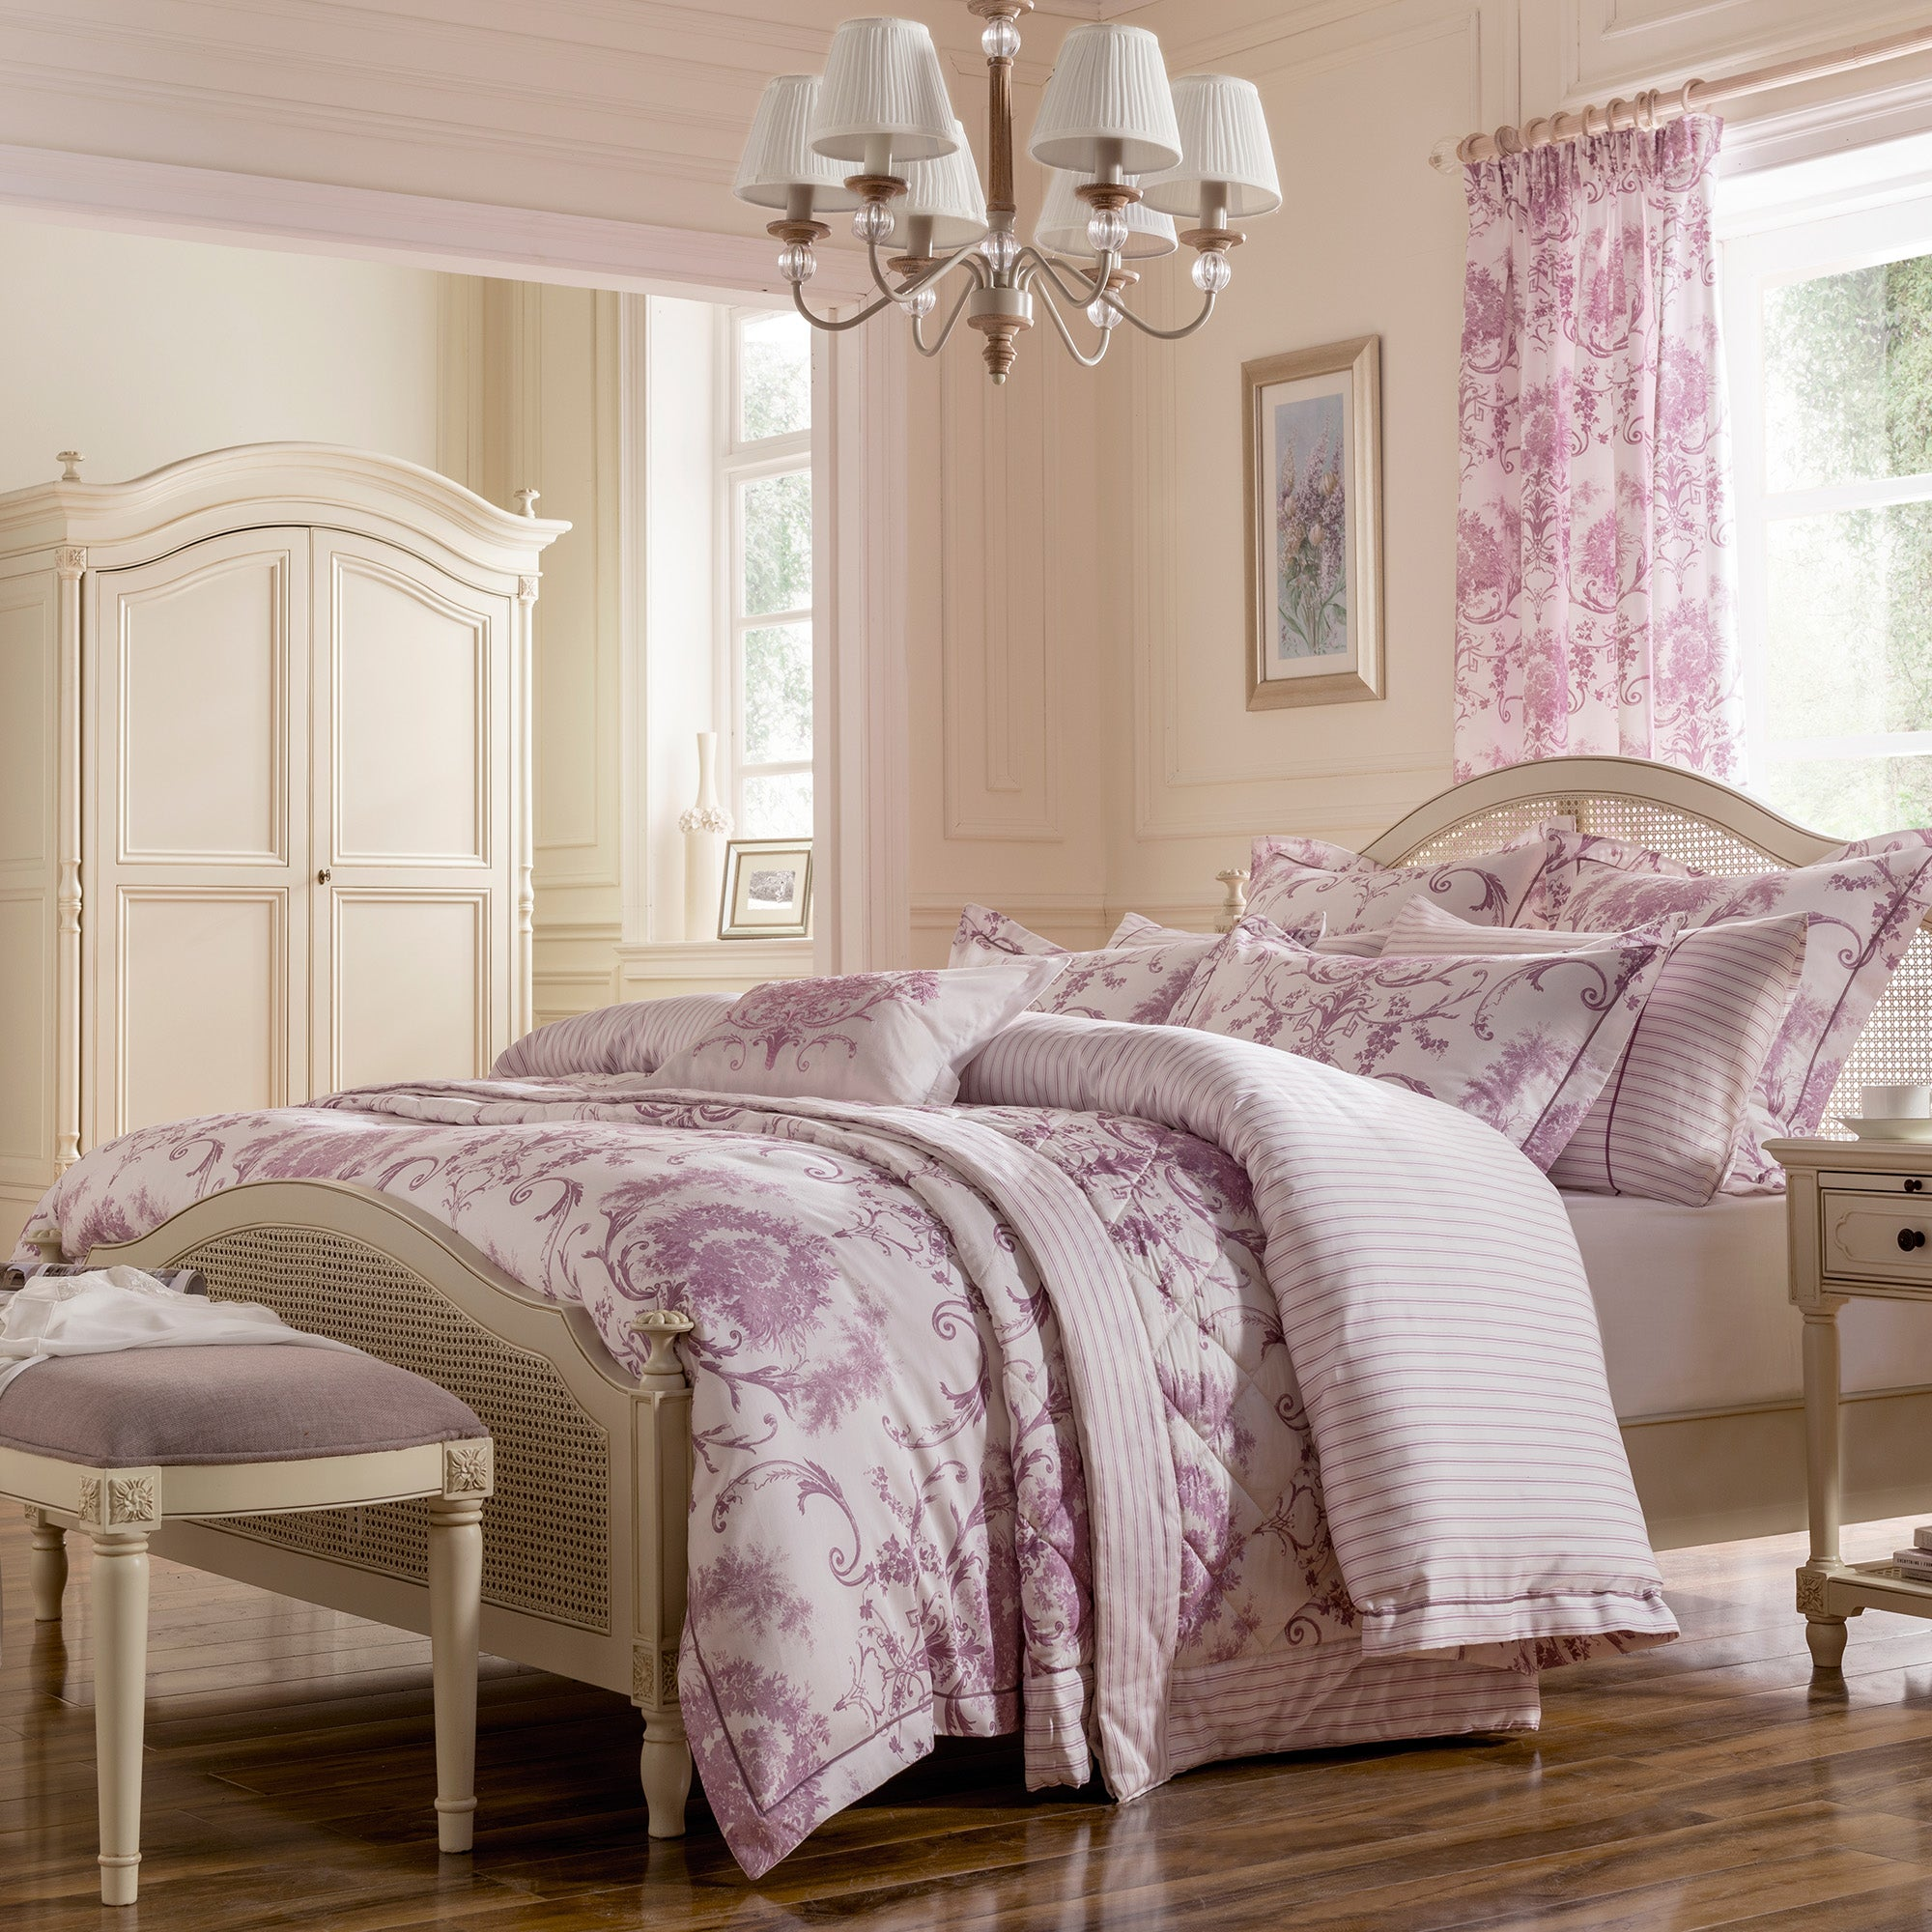 Dorma Juliette Bedroom Collection. Dorma Juliette Bedroom Collection   Dunelm